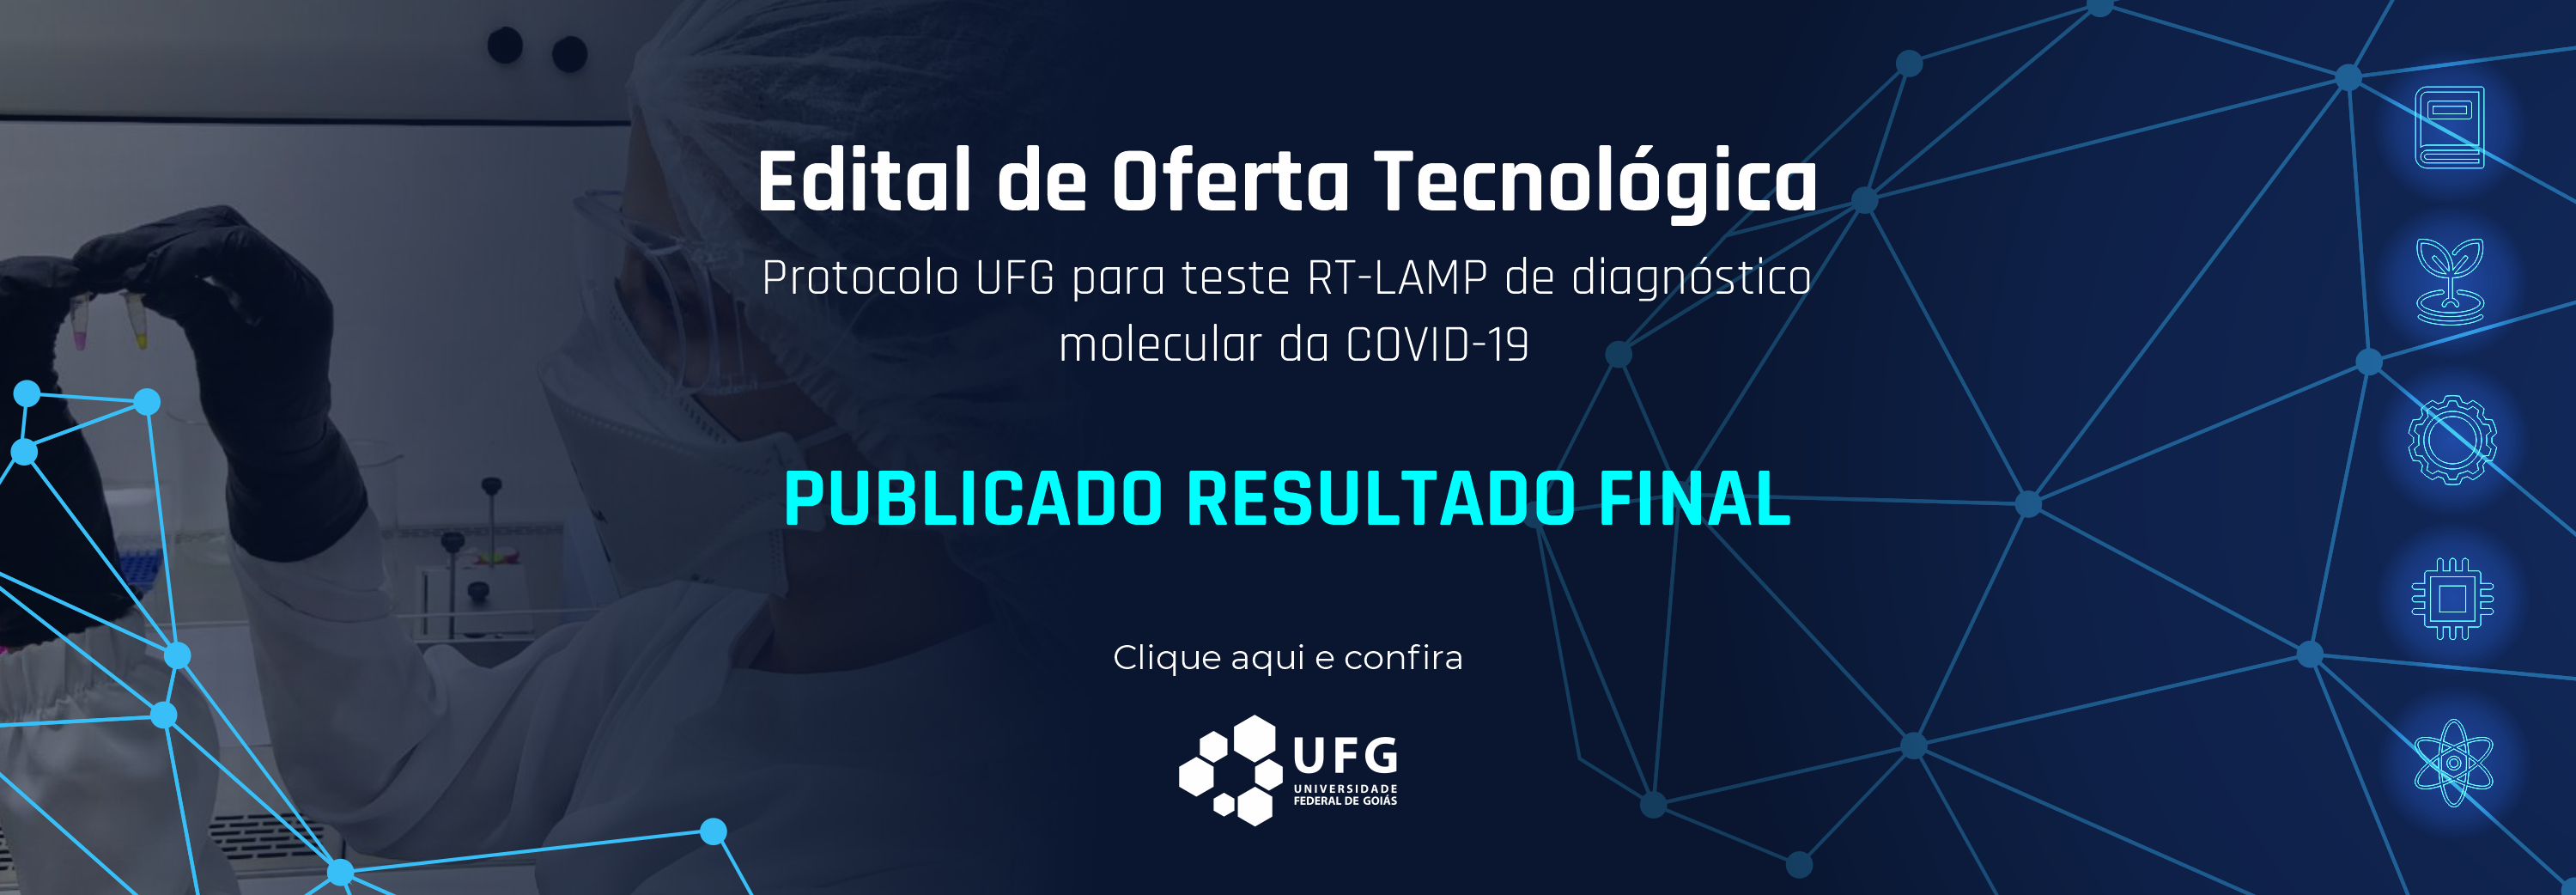 Publicado resultado final do edital UFG RT-LAMP